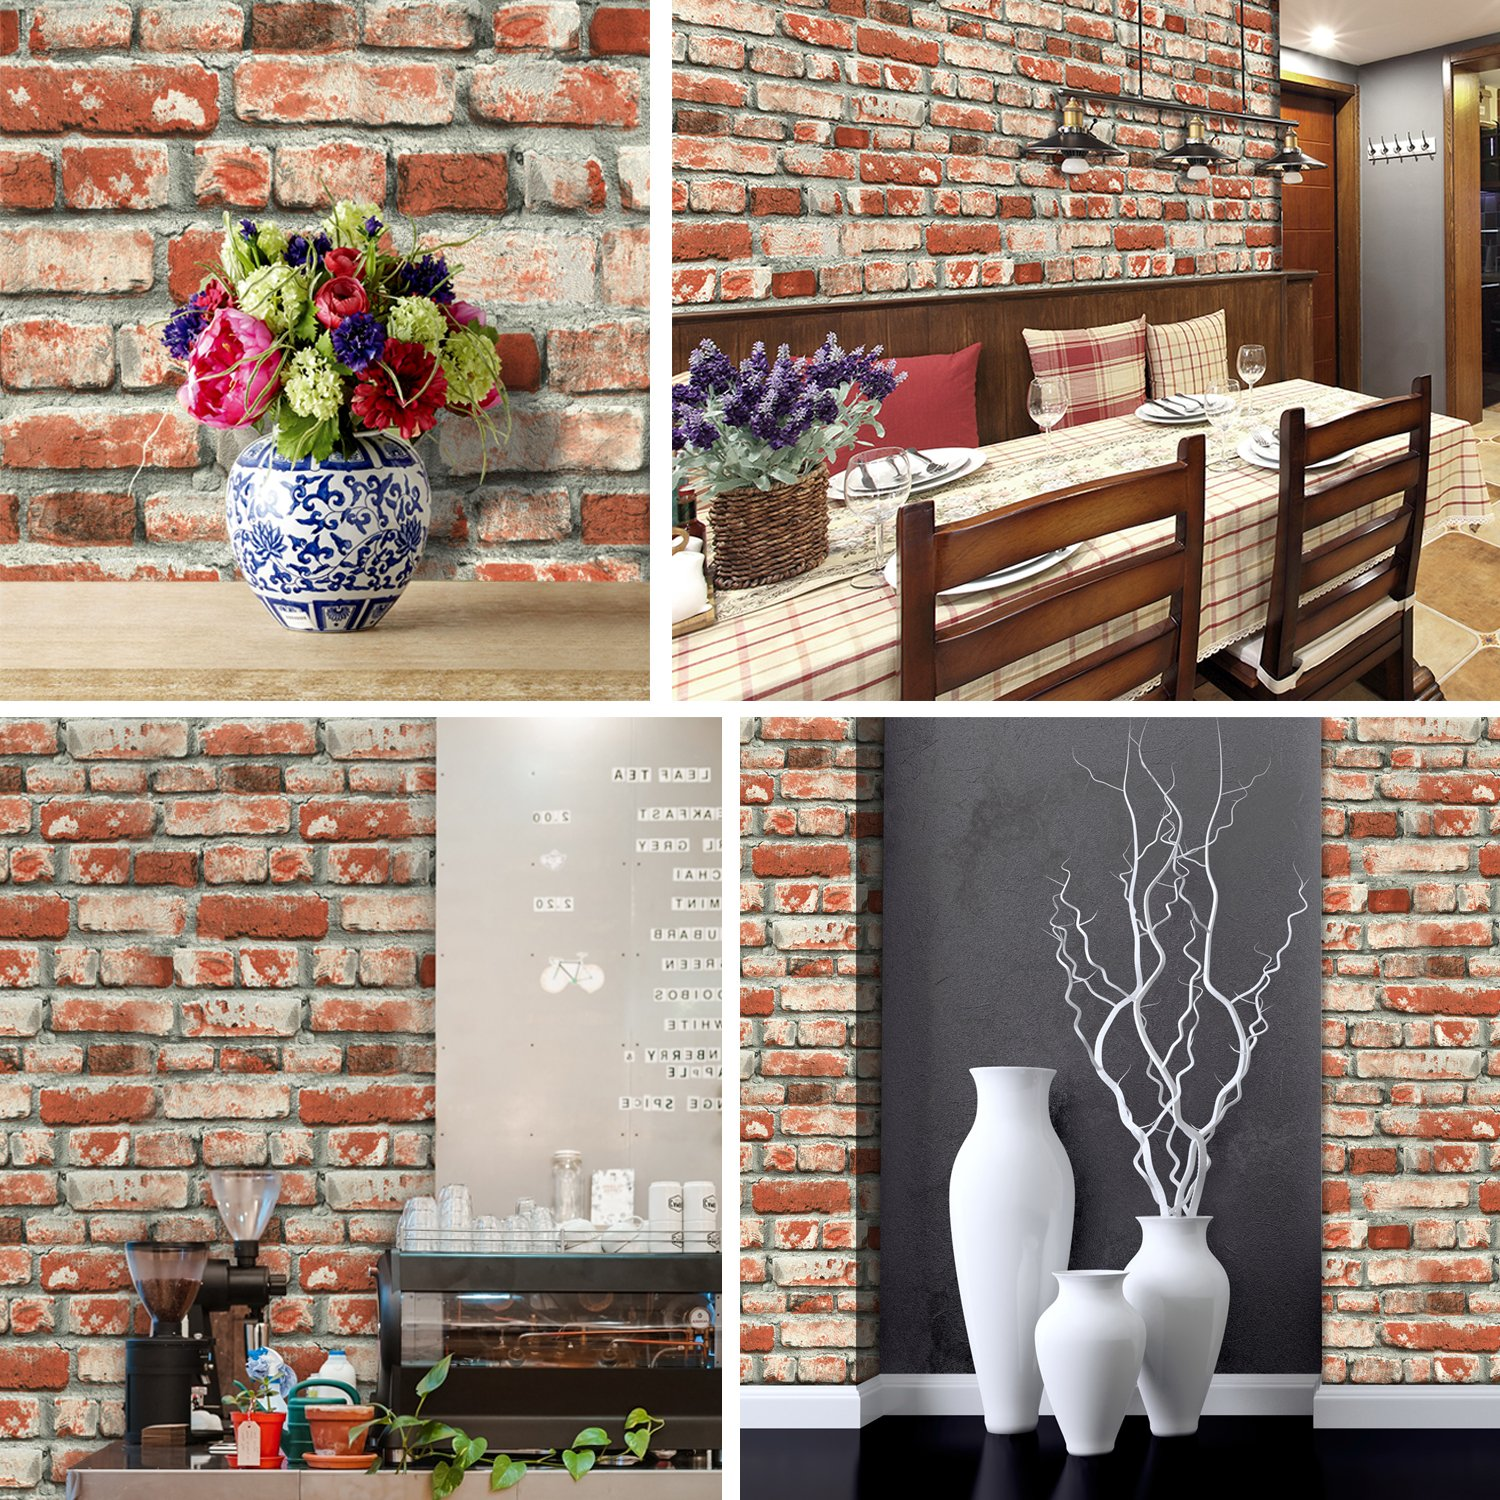 Amazoncom YT6501 Red Brick Wallpaper RollVintage Faux